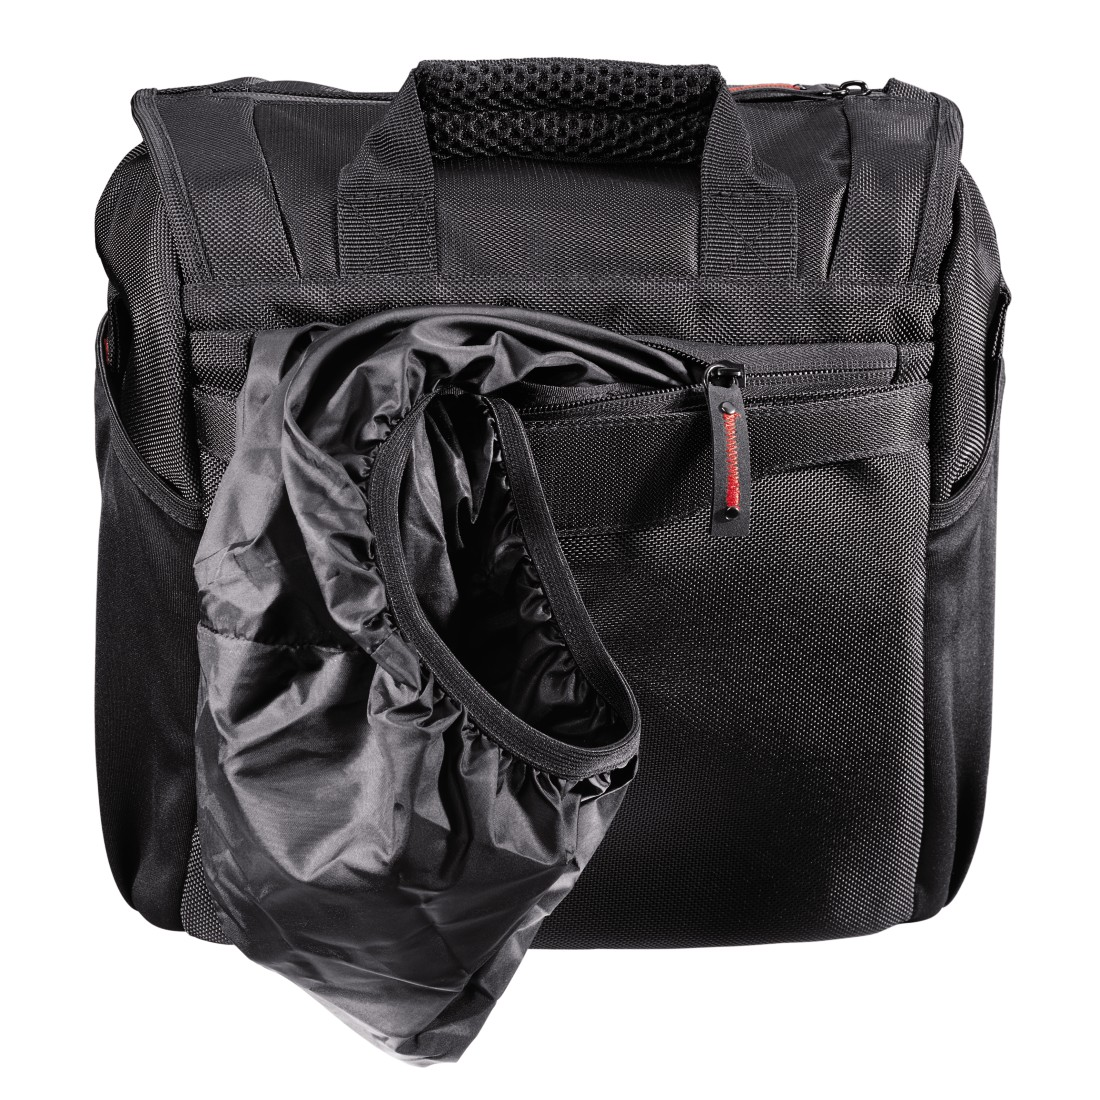 dex High-Res Detail - Hama, Protour Camera Bag, 200, black